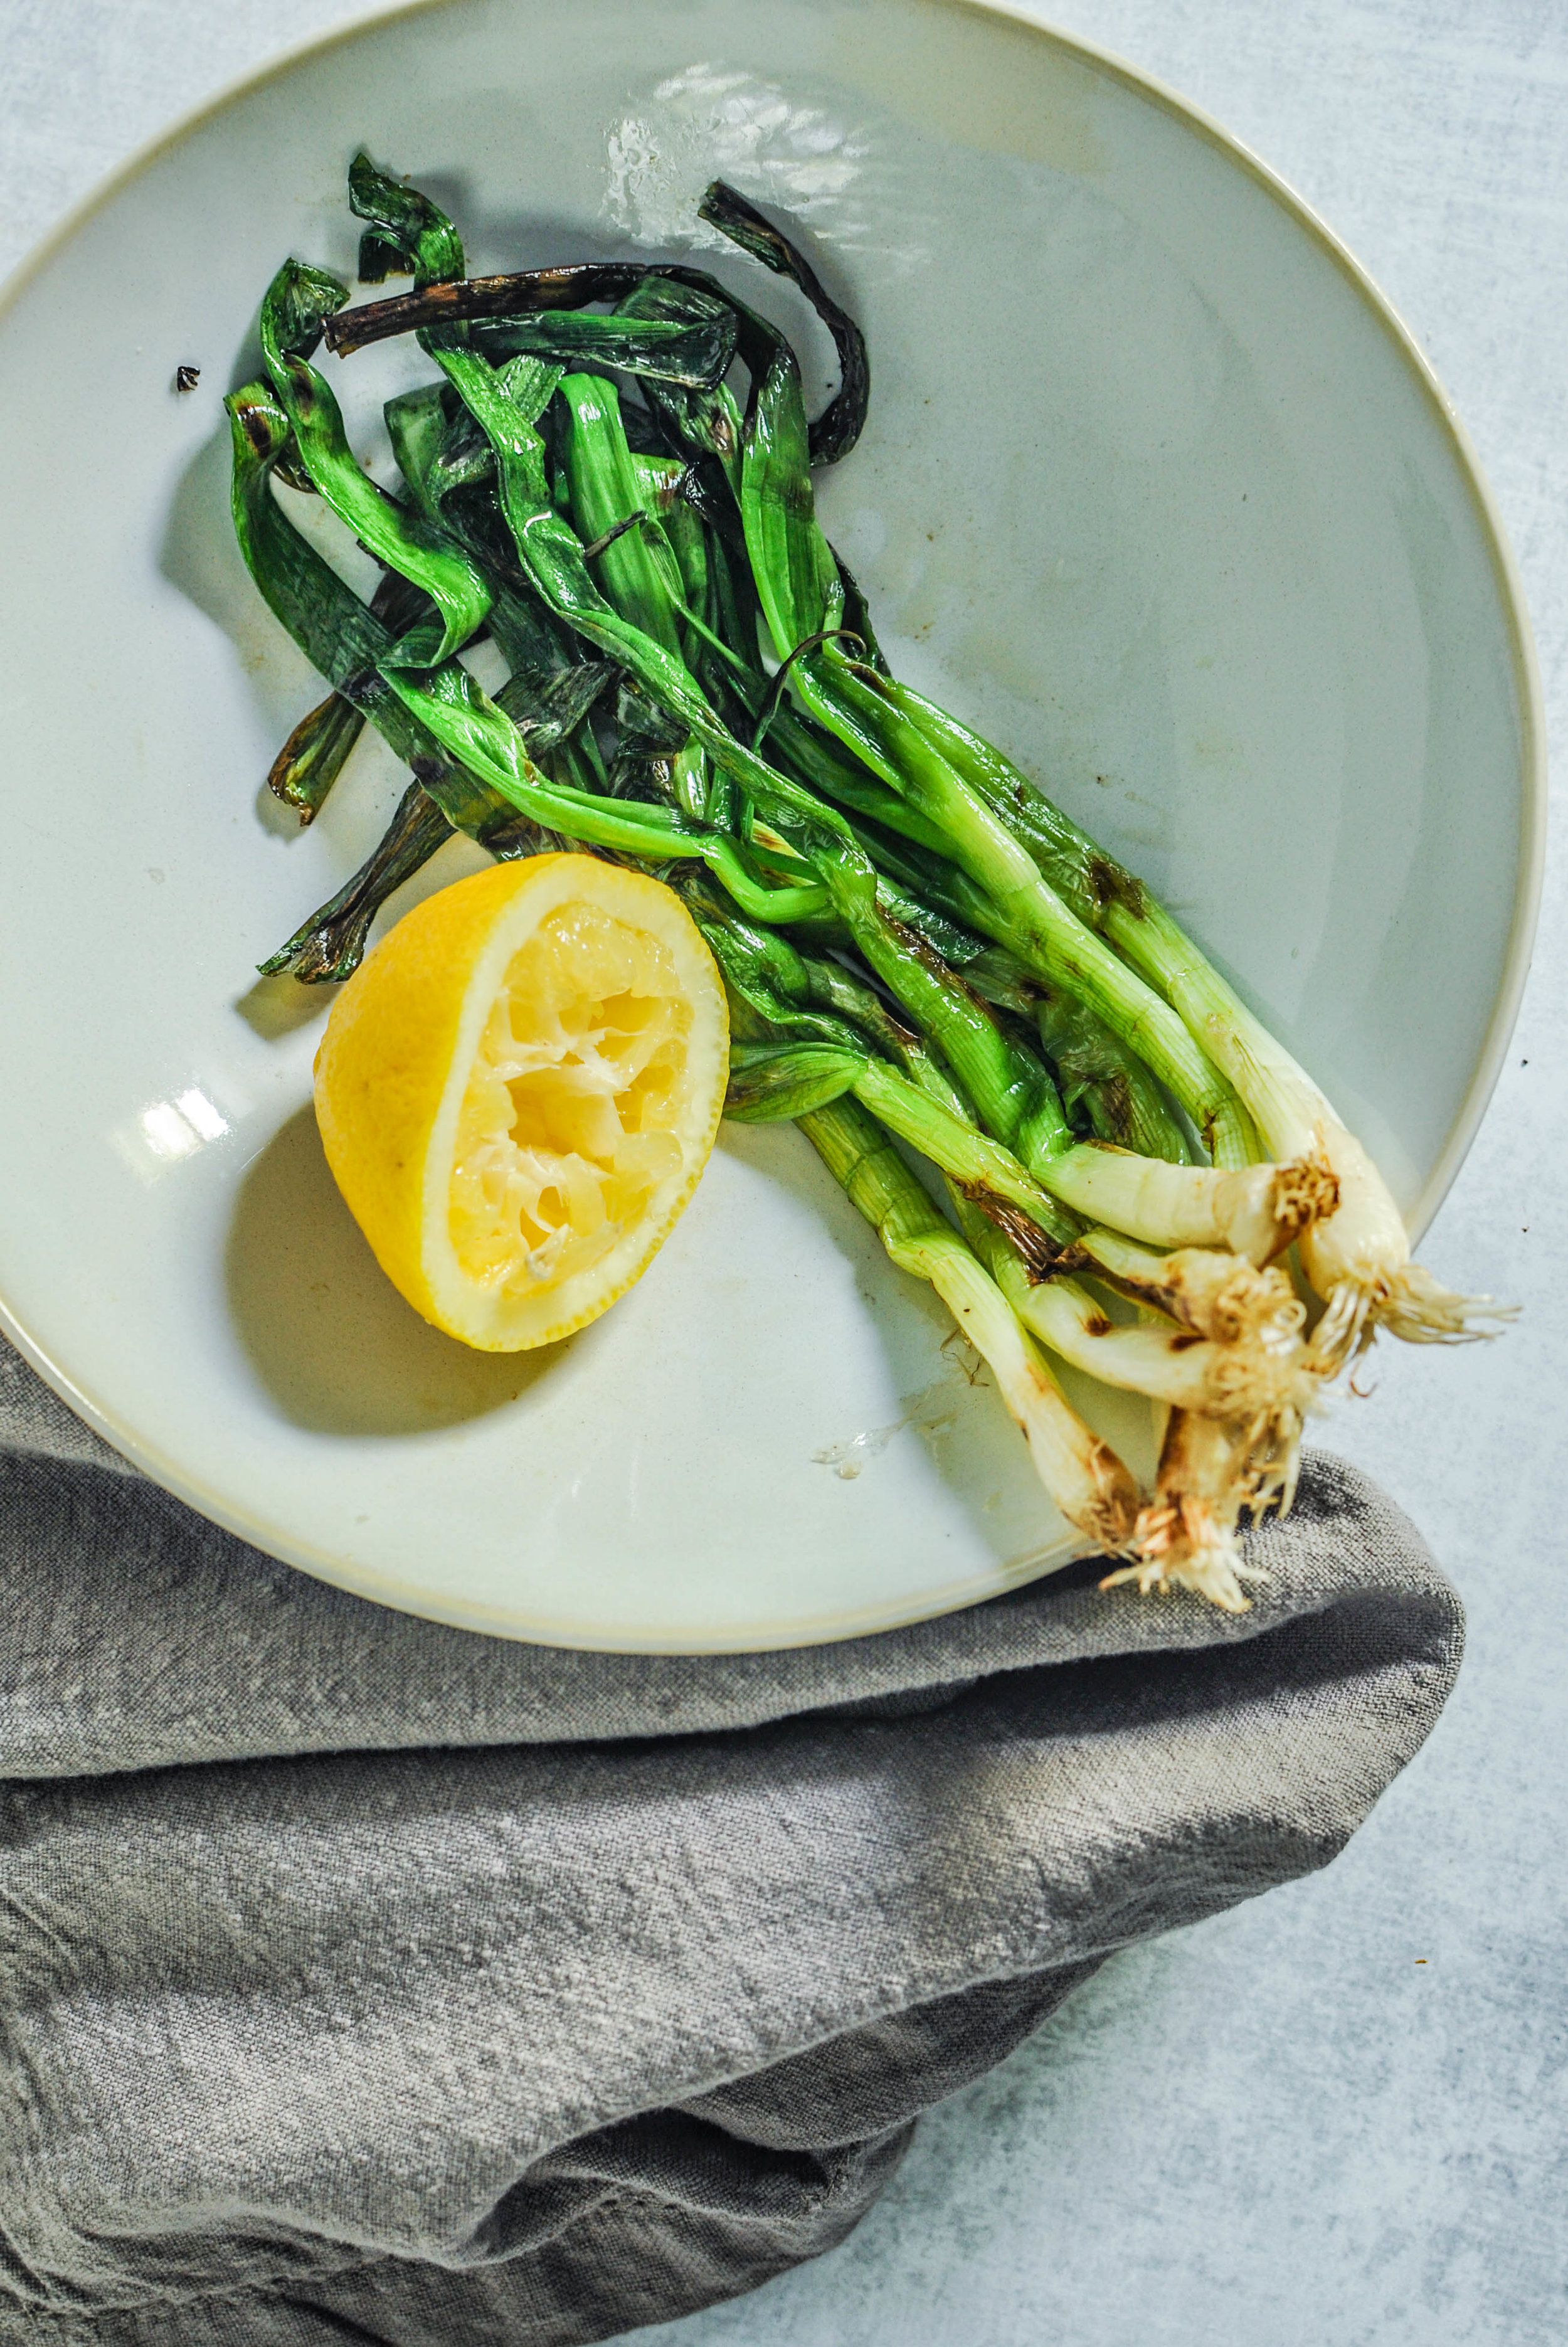 An easy side dish recipe - you'll love these grilled scallions!